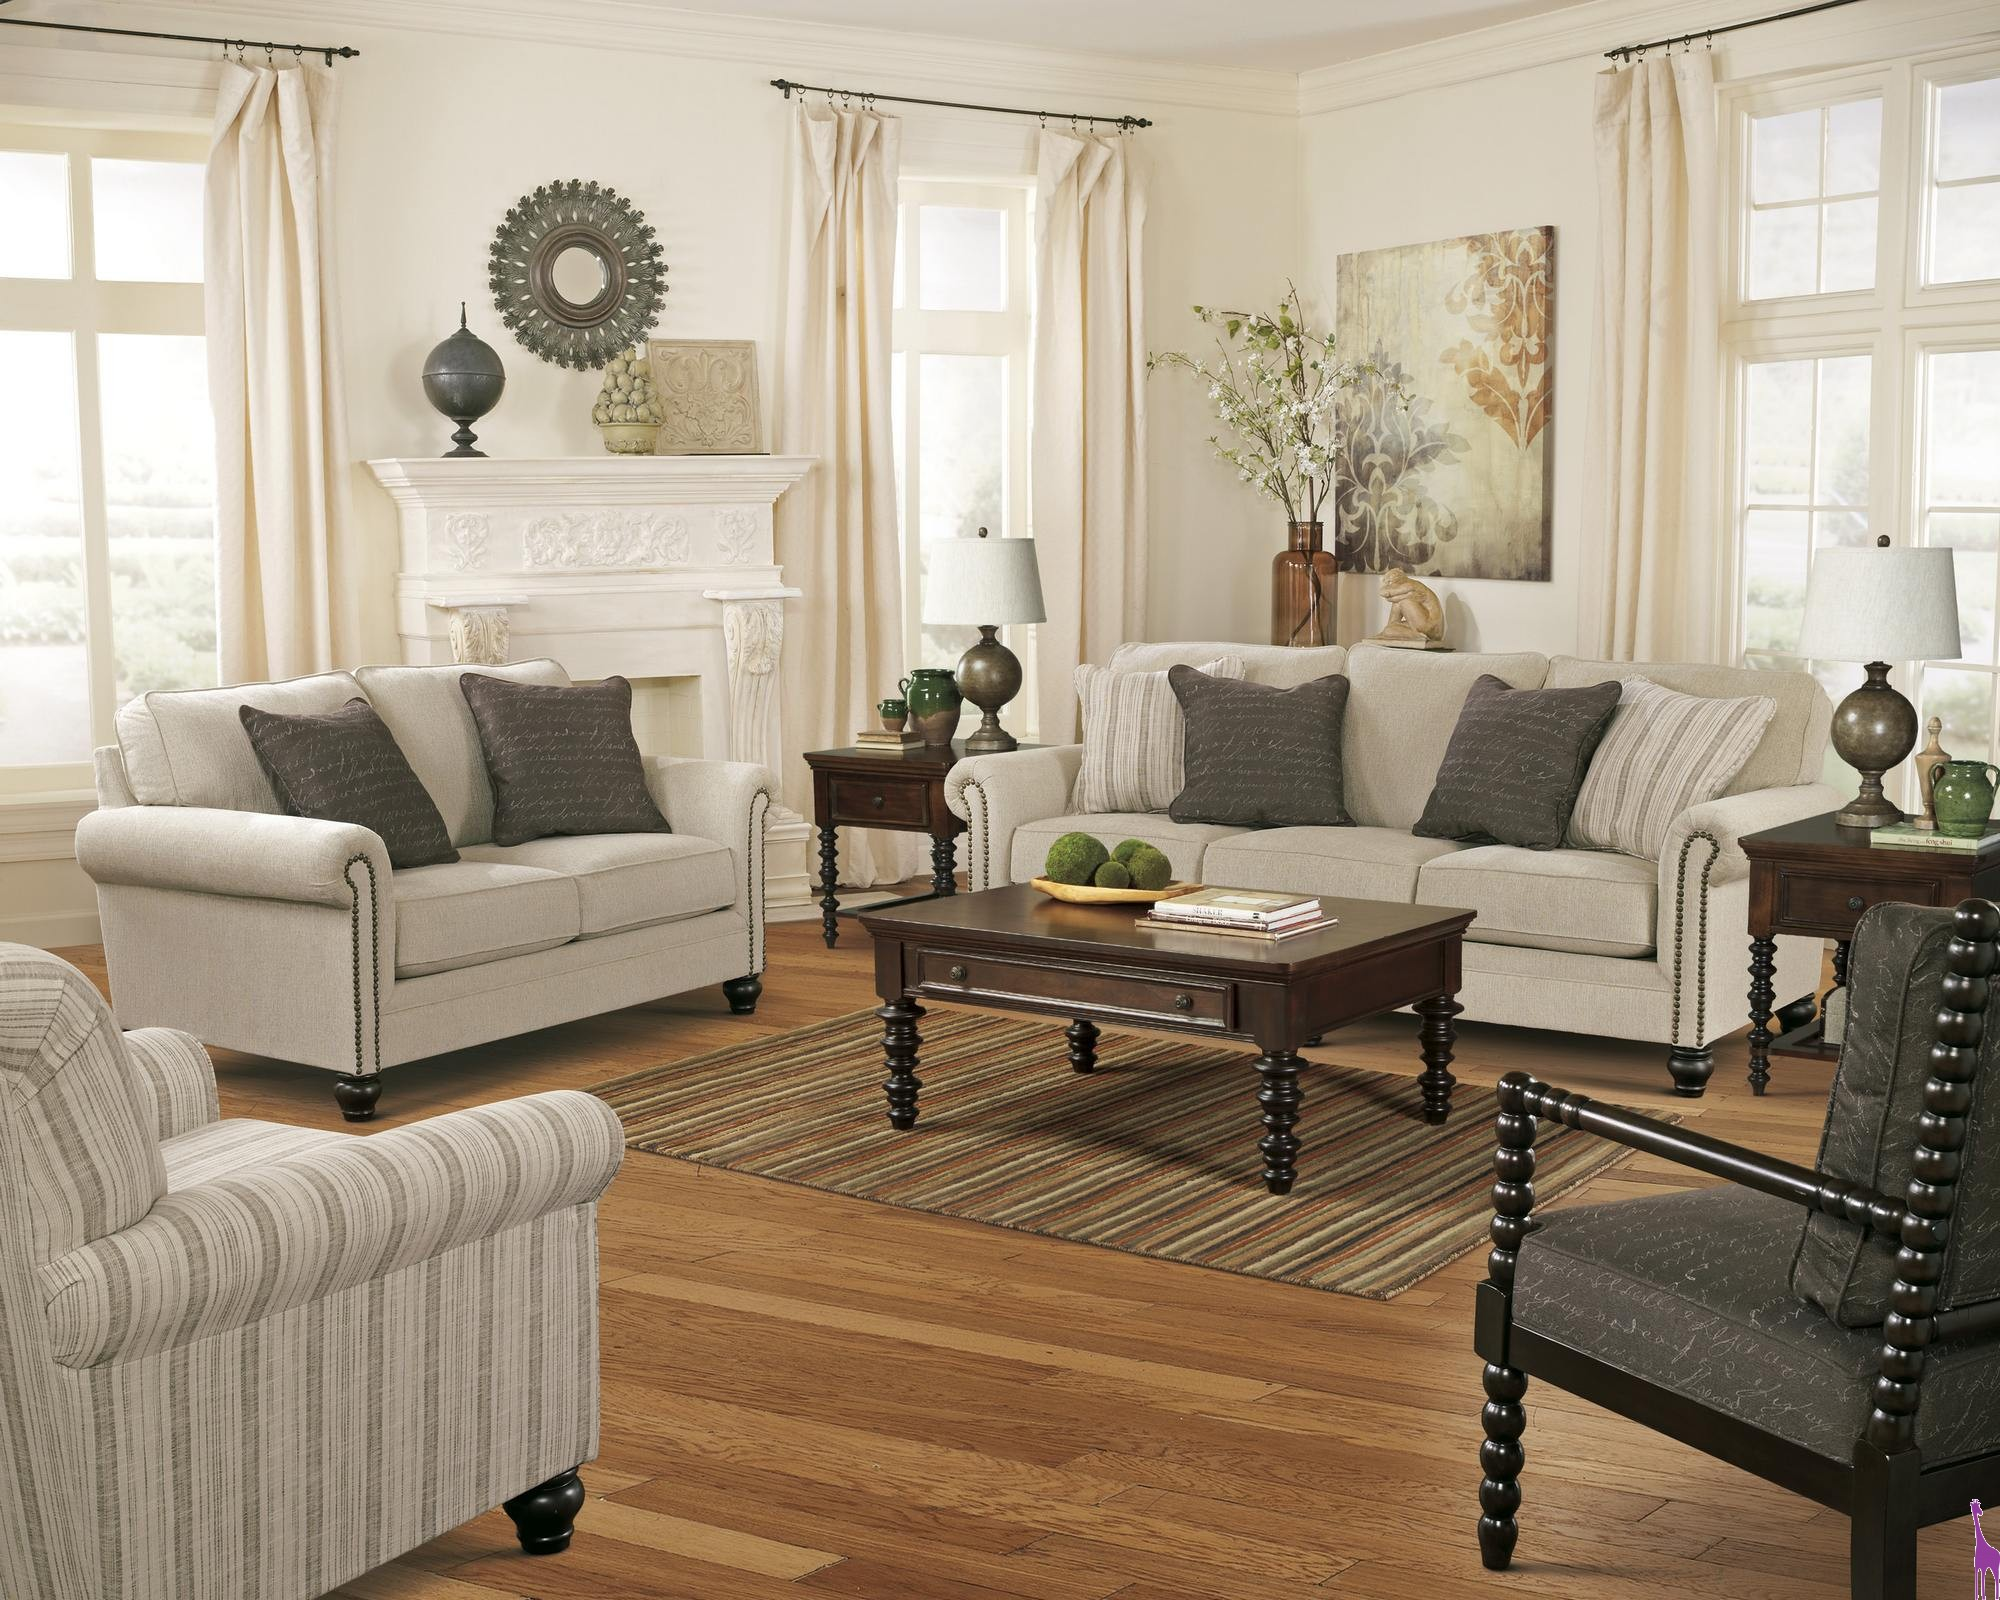 milary living room set ashley piece accent chair and table round white wicker uttermost laton mirrored sofa vita lighting battery operated wall clock side over arm mosaic bistro